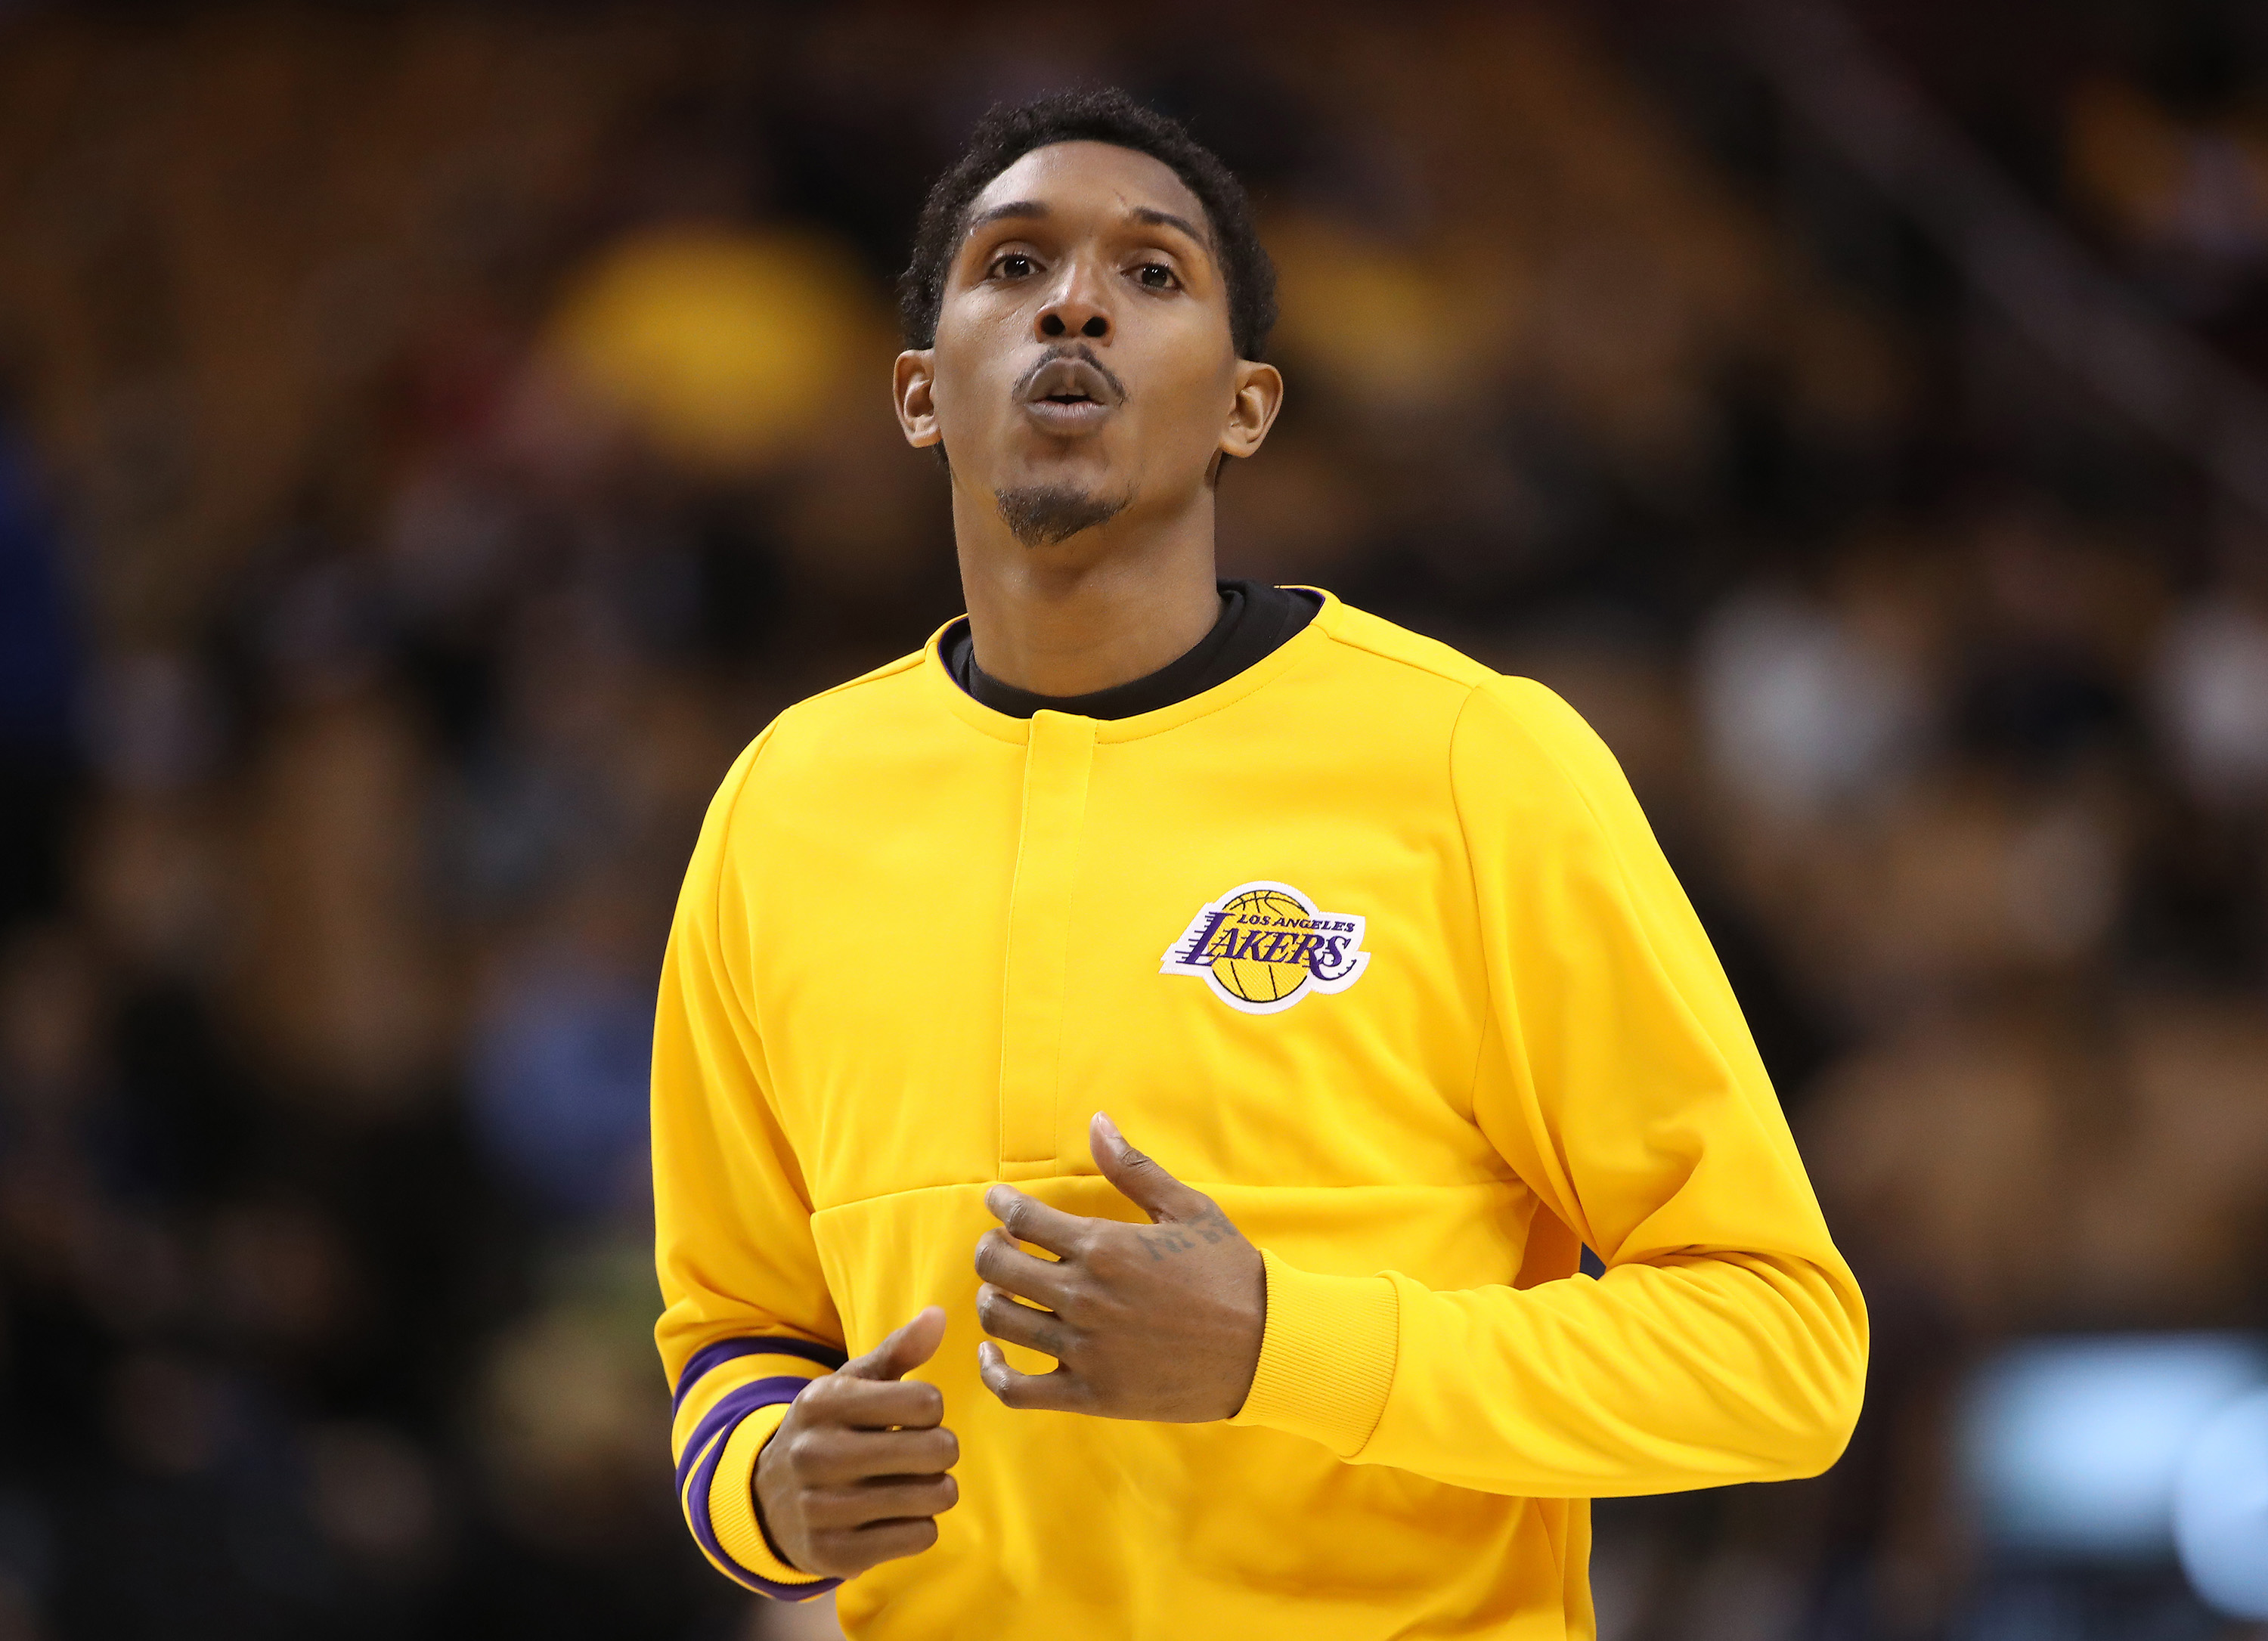 Dec 2, 2016; Toronto, Ontario, CAN; Los Angeles Lakers point guard Lou Williams (23) warms up before the start of their game against the Toronto Raptors at Air Canada Centre. The Raptors beat the Lakers 113-80. Mandatory Credit: Tom Szczerbowski-USA TODAY Sports